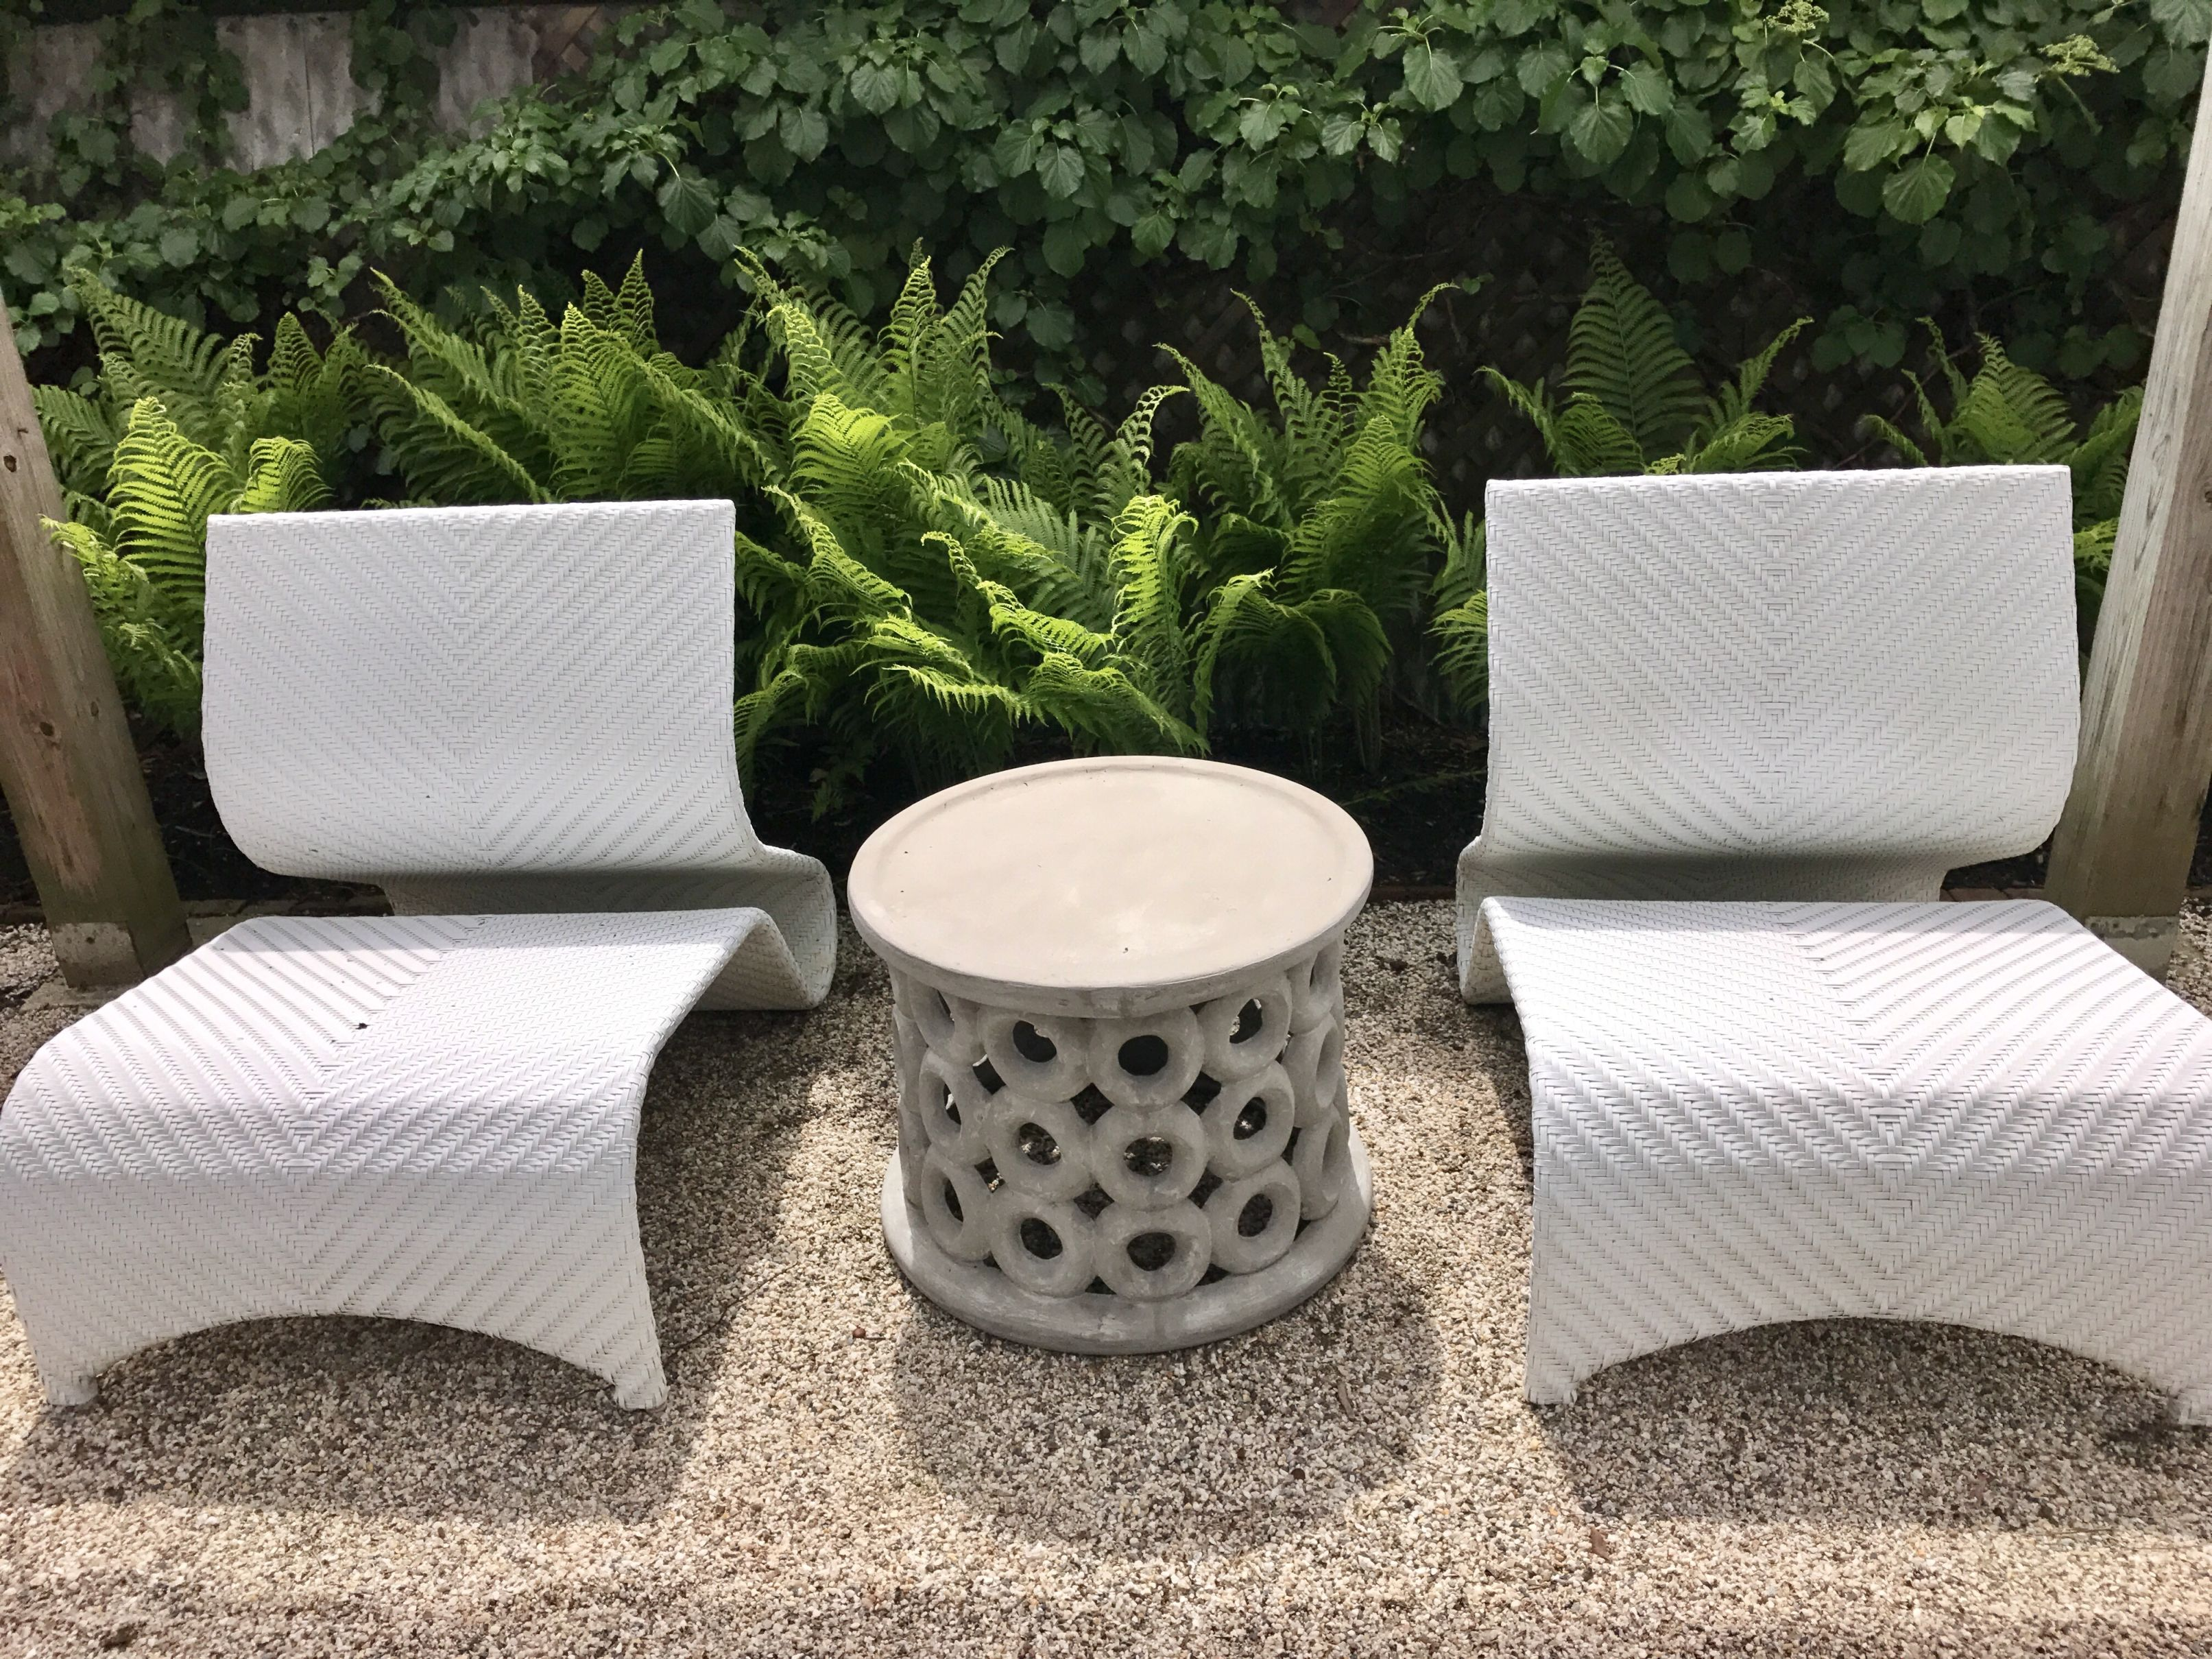 dohnet concrete outdoor side table mecox gardens fnst donut furniture previous next lighting portland stylish coffee bar height dining room sets contemporary clocks bamboo lamp